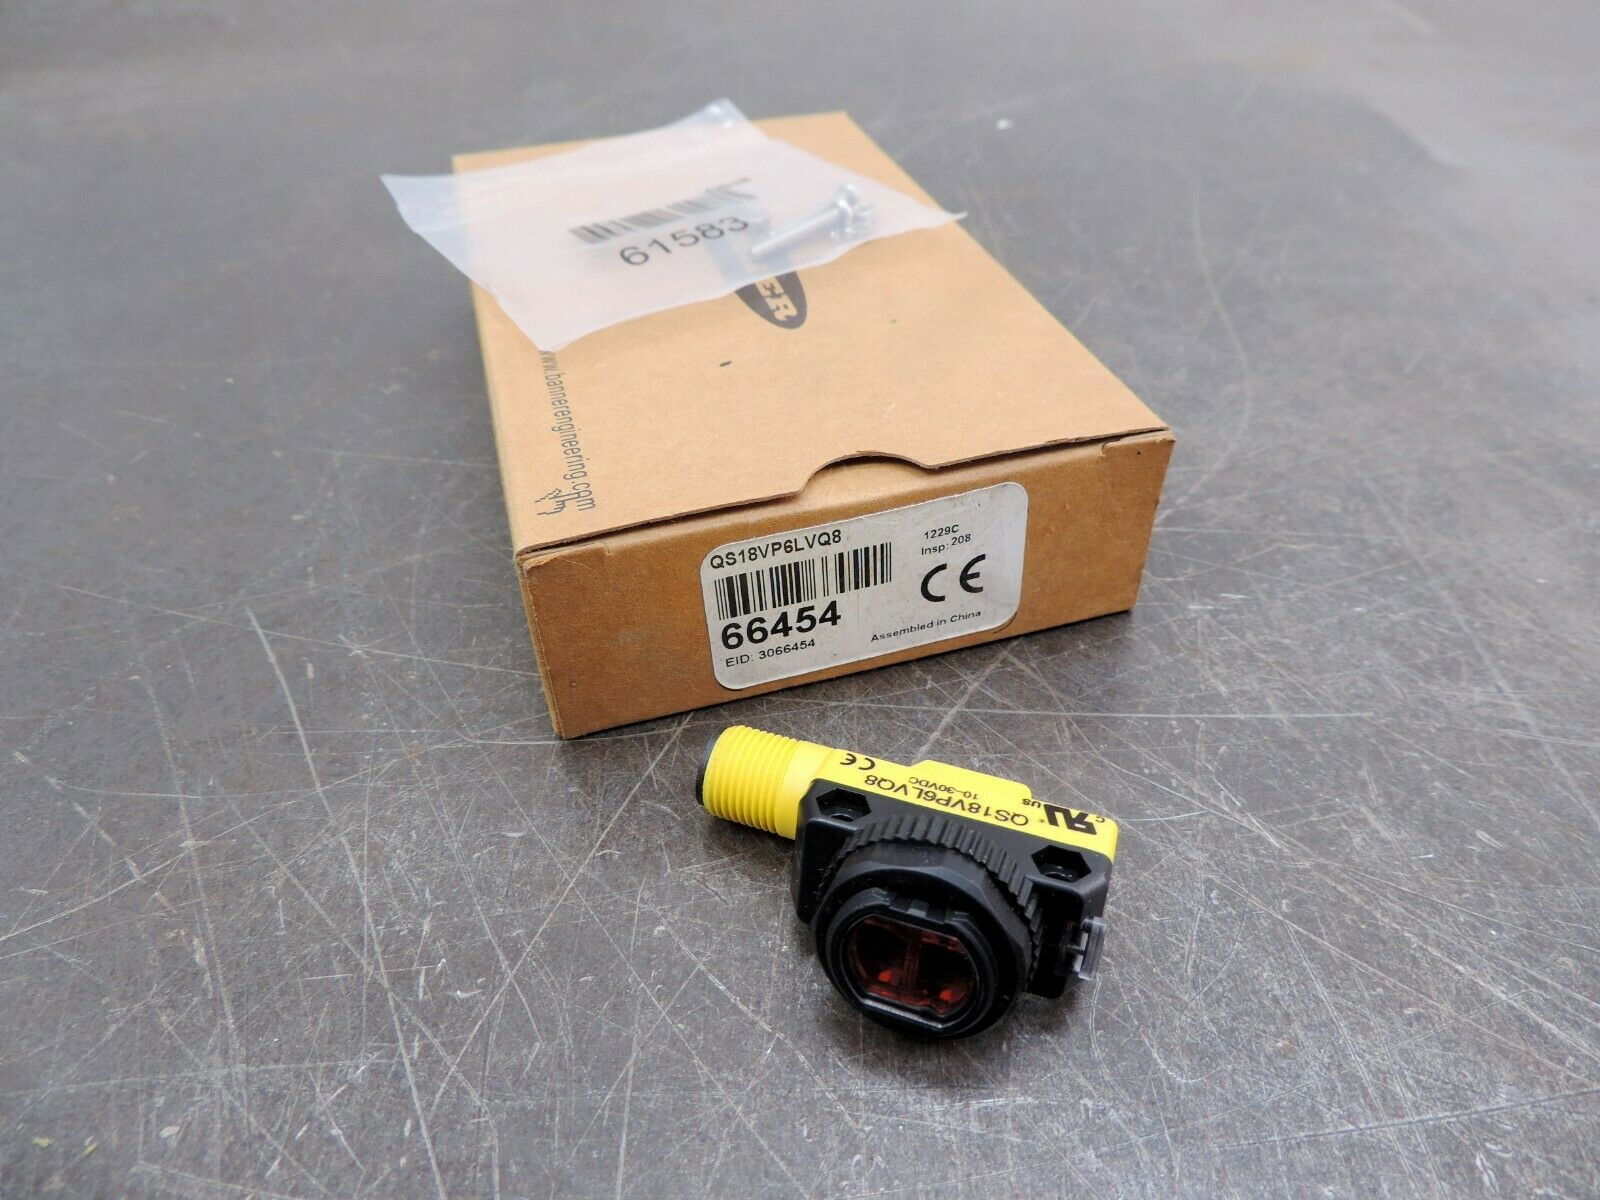 NEW IN BOX CARLING SWITCH 700-BL-XG 700BLXG